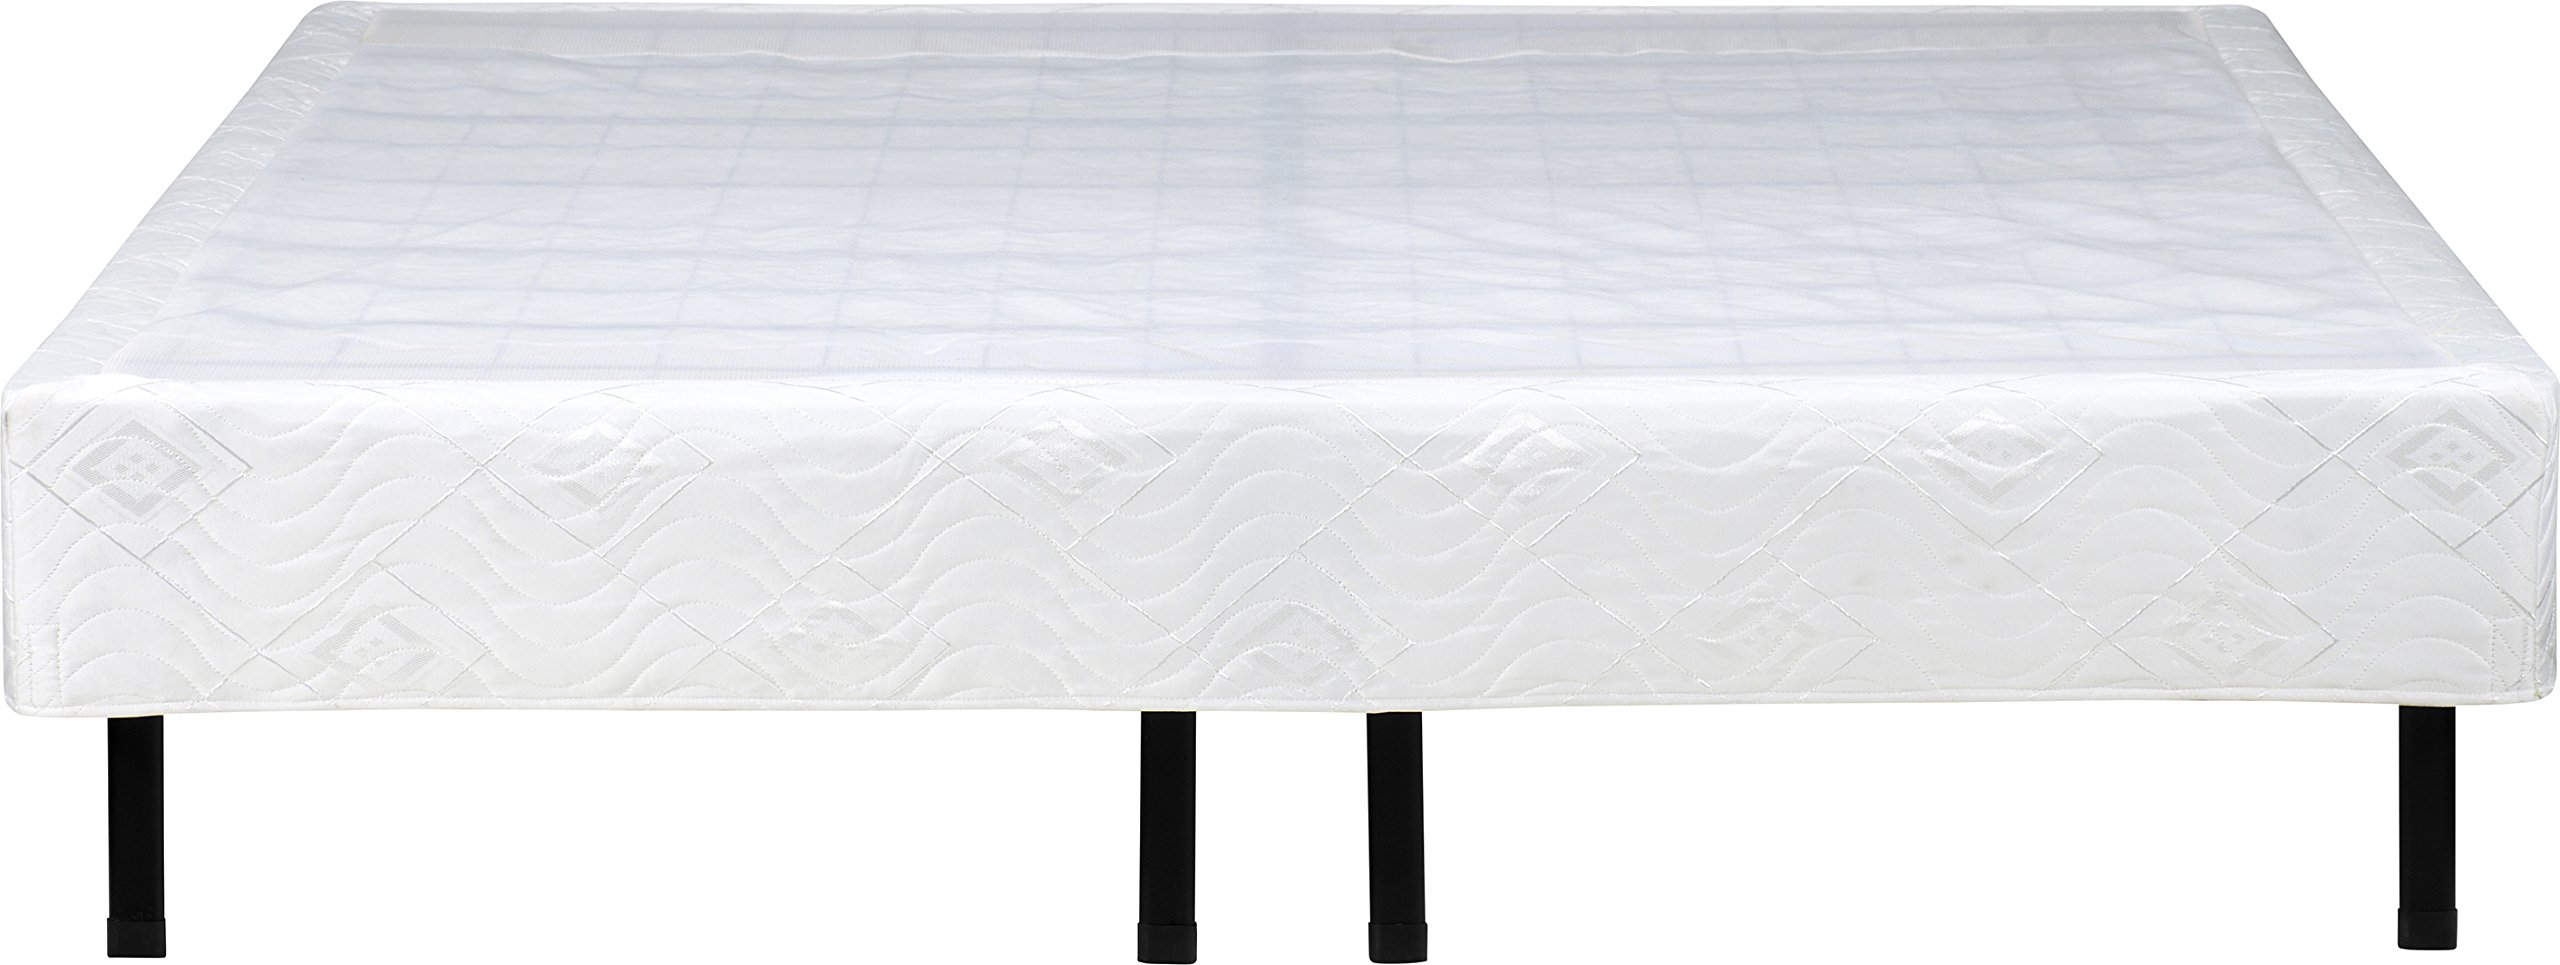 Flex Form Raised Platform Bed Frame Accessory: Bed Skirt / Base Cover, White, California King by Flex Form